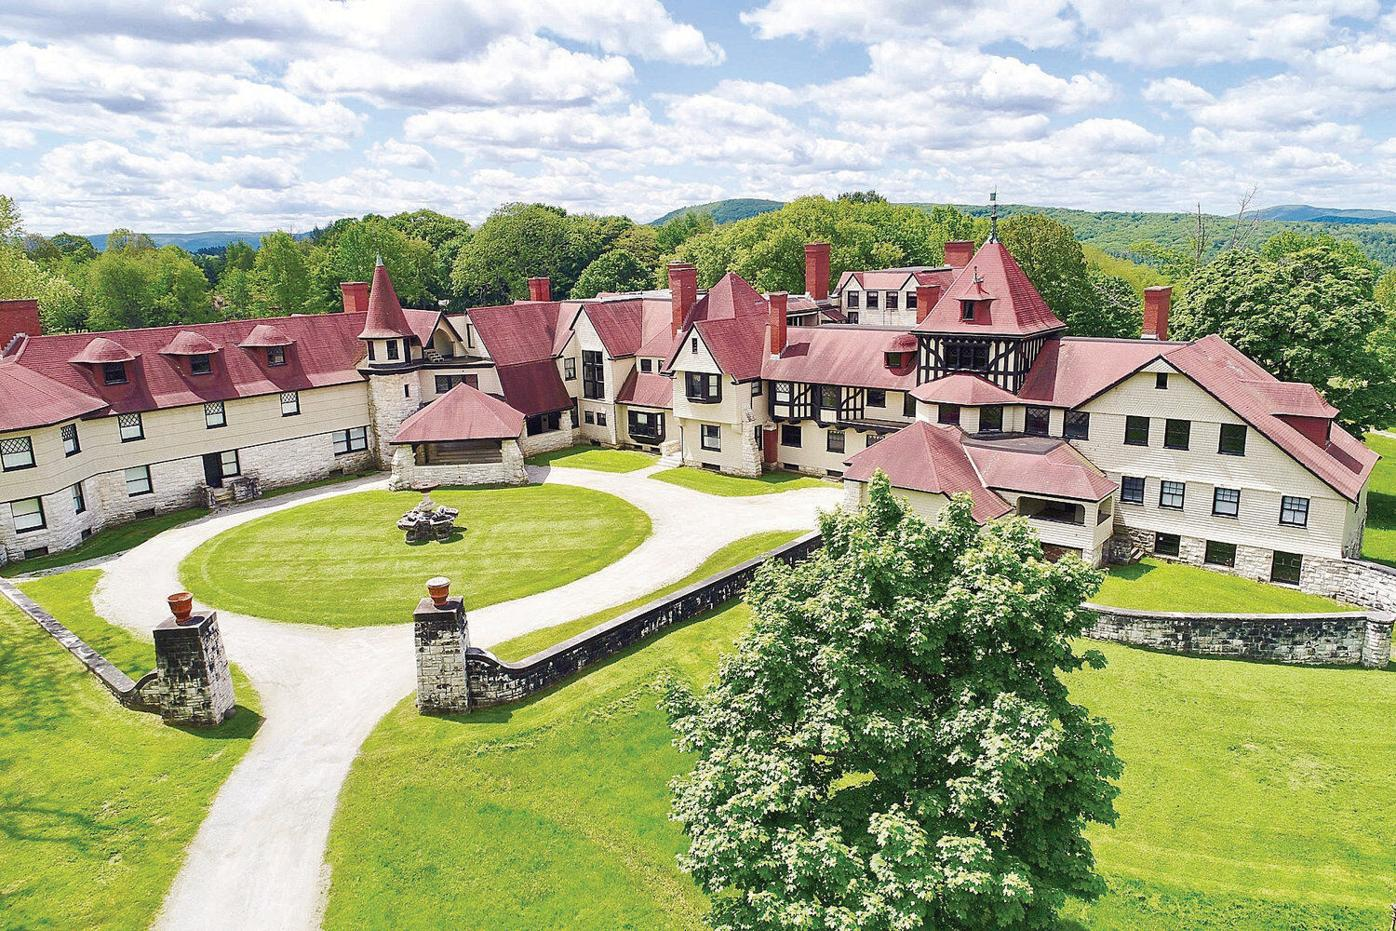 $50M Elm Court renovation pushed to 2020